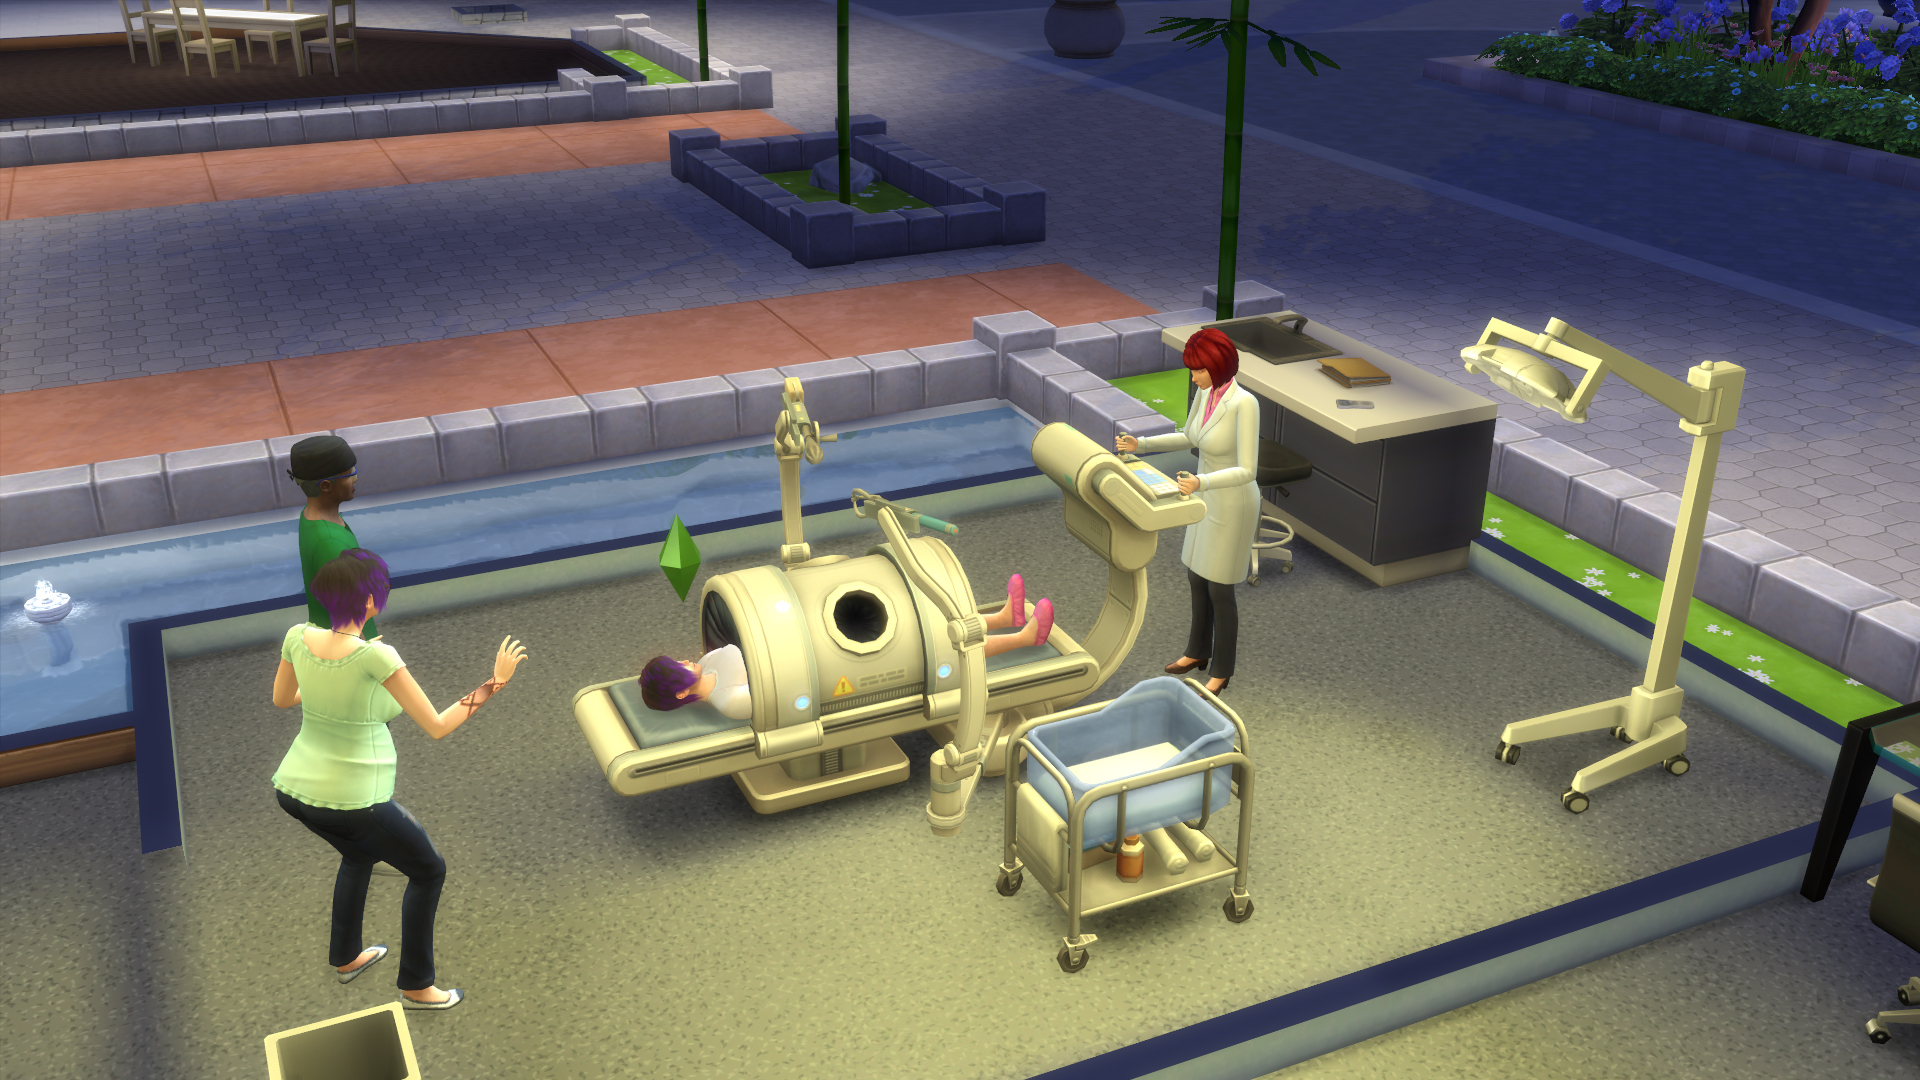 The Sims 4, Maxis & The Sims Studio, Electronic Arts, 2014/2015